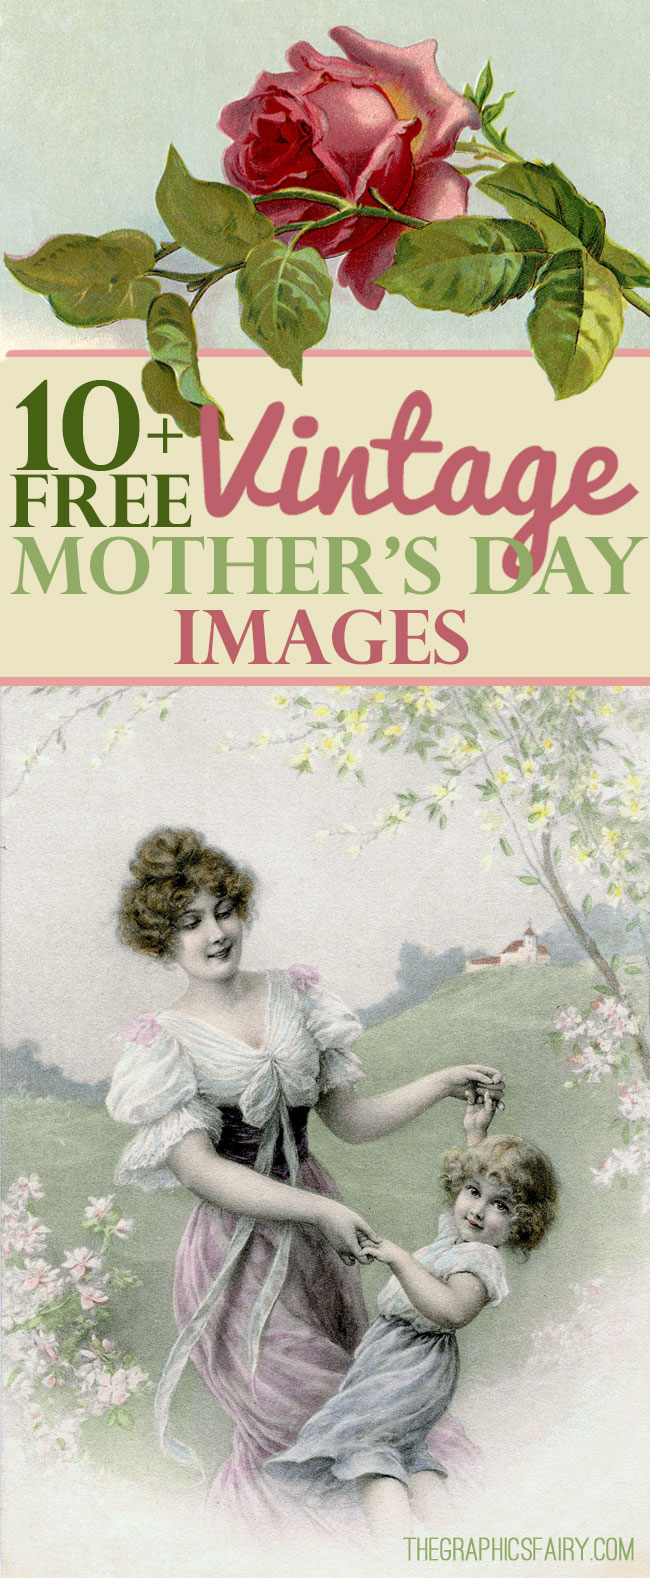 Free Vintage Mother's Day Images